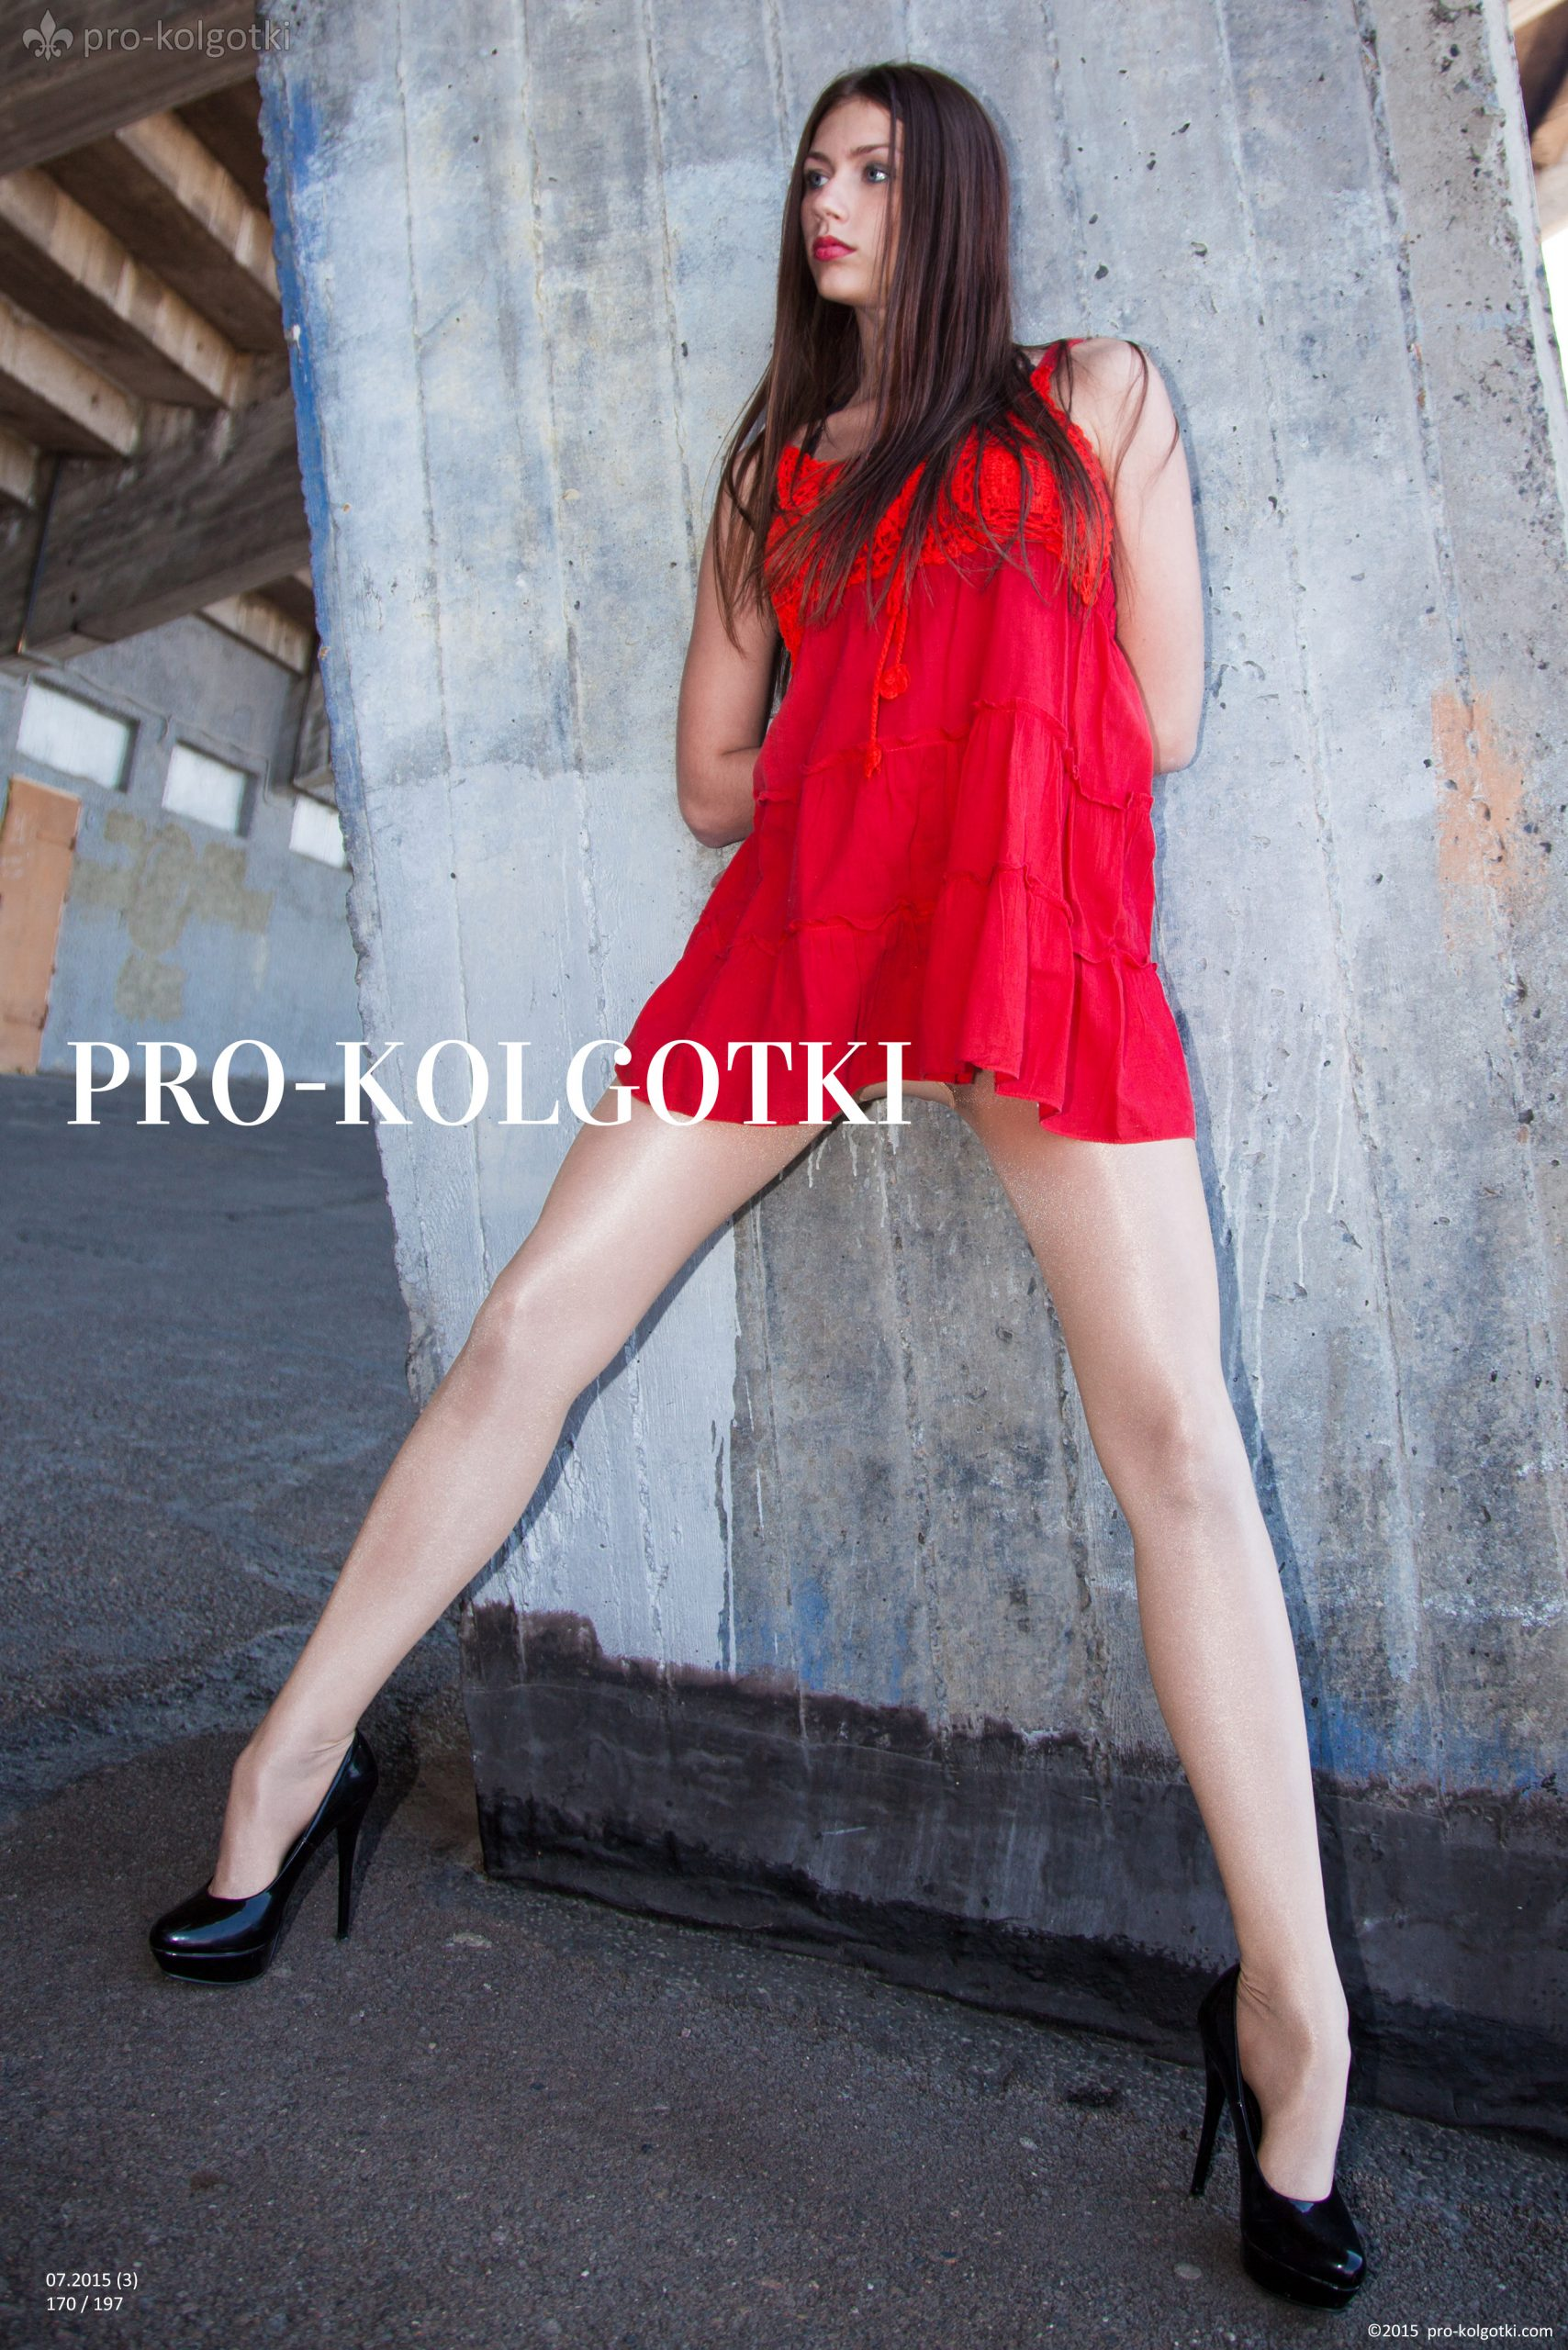 girls in pantyhose - photo from pro-kolgotki magazine July 2015-07(3)